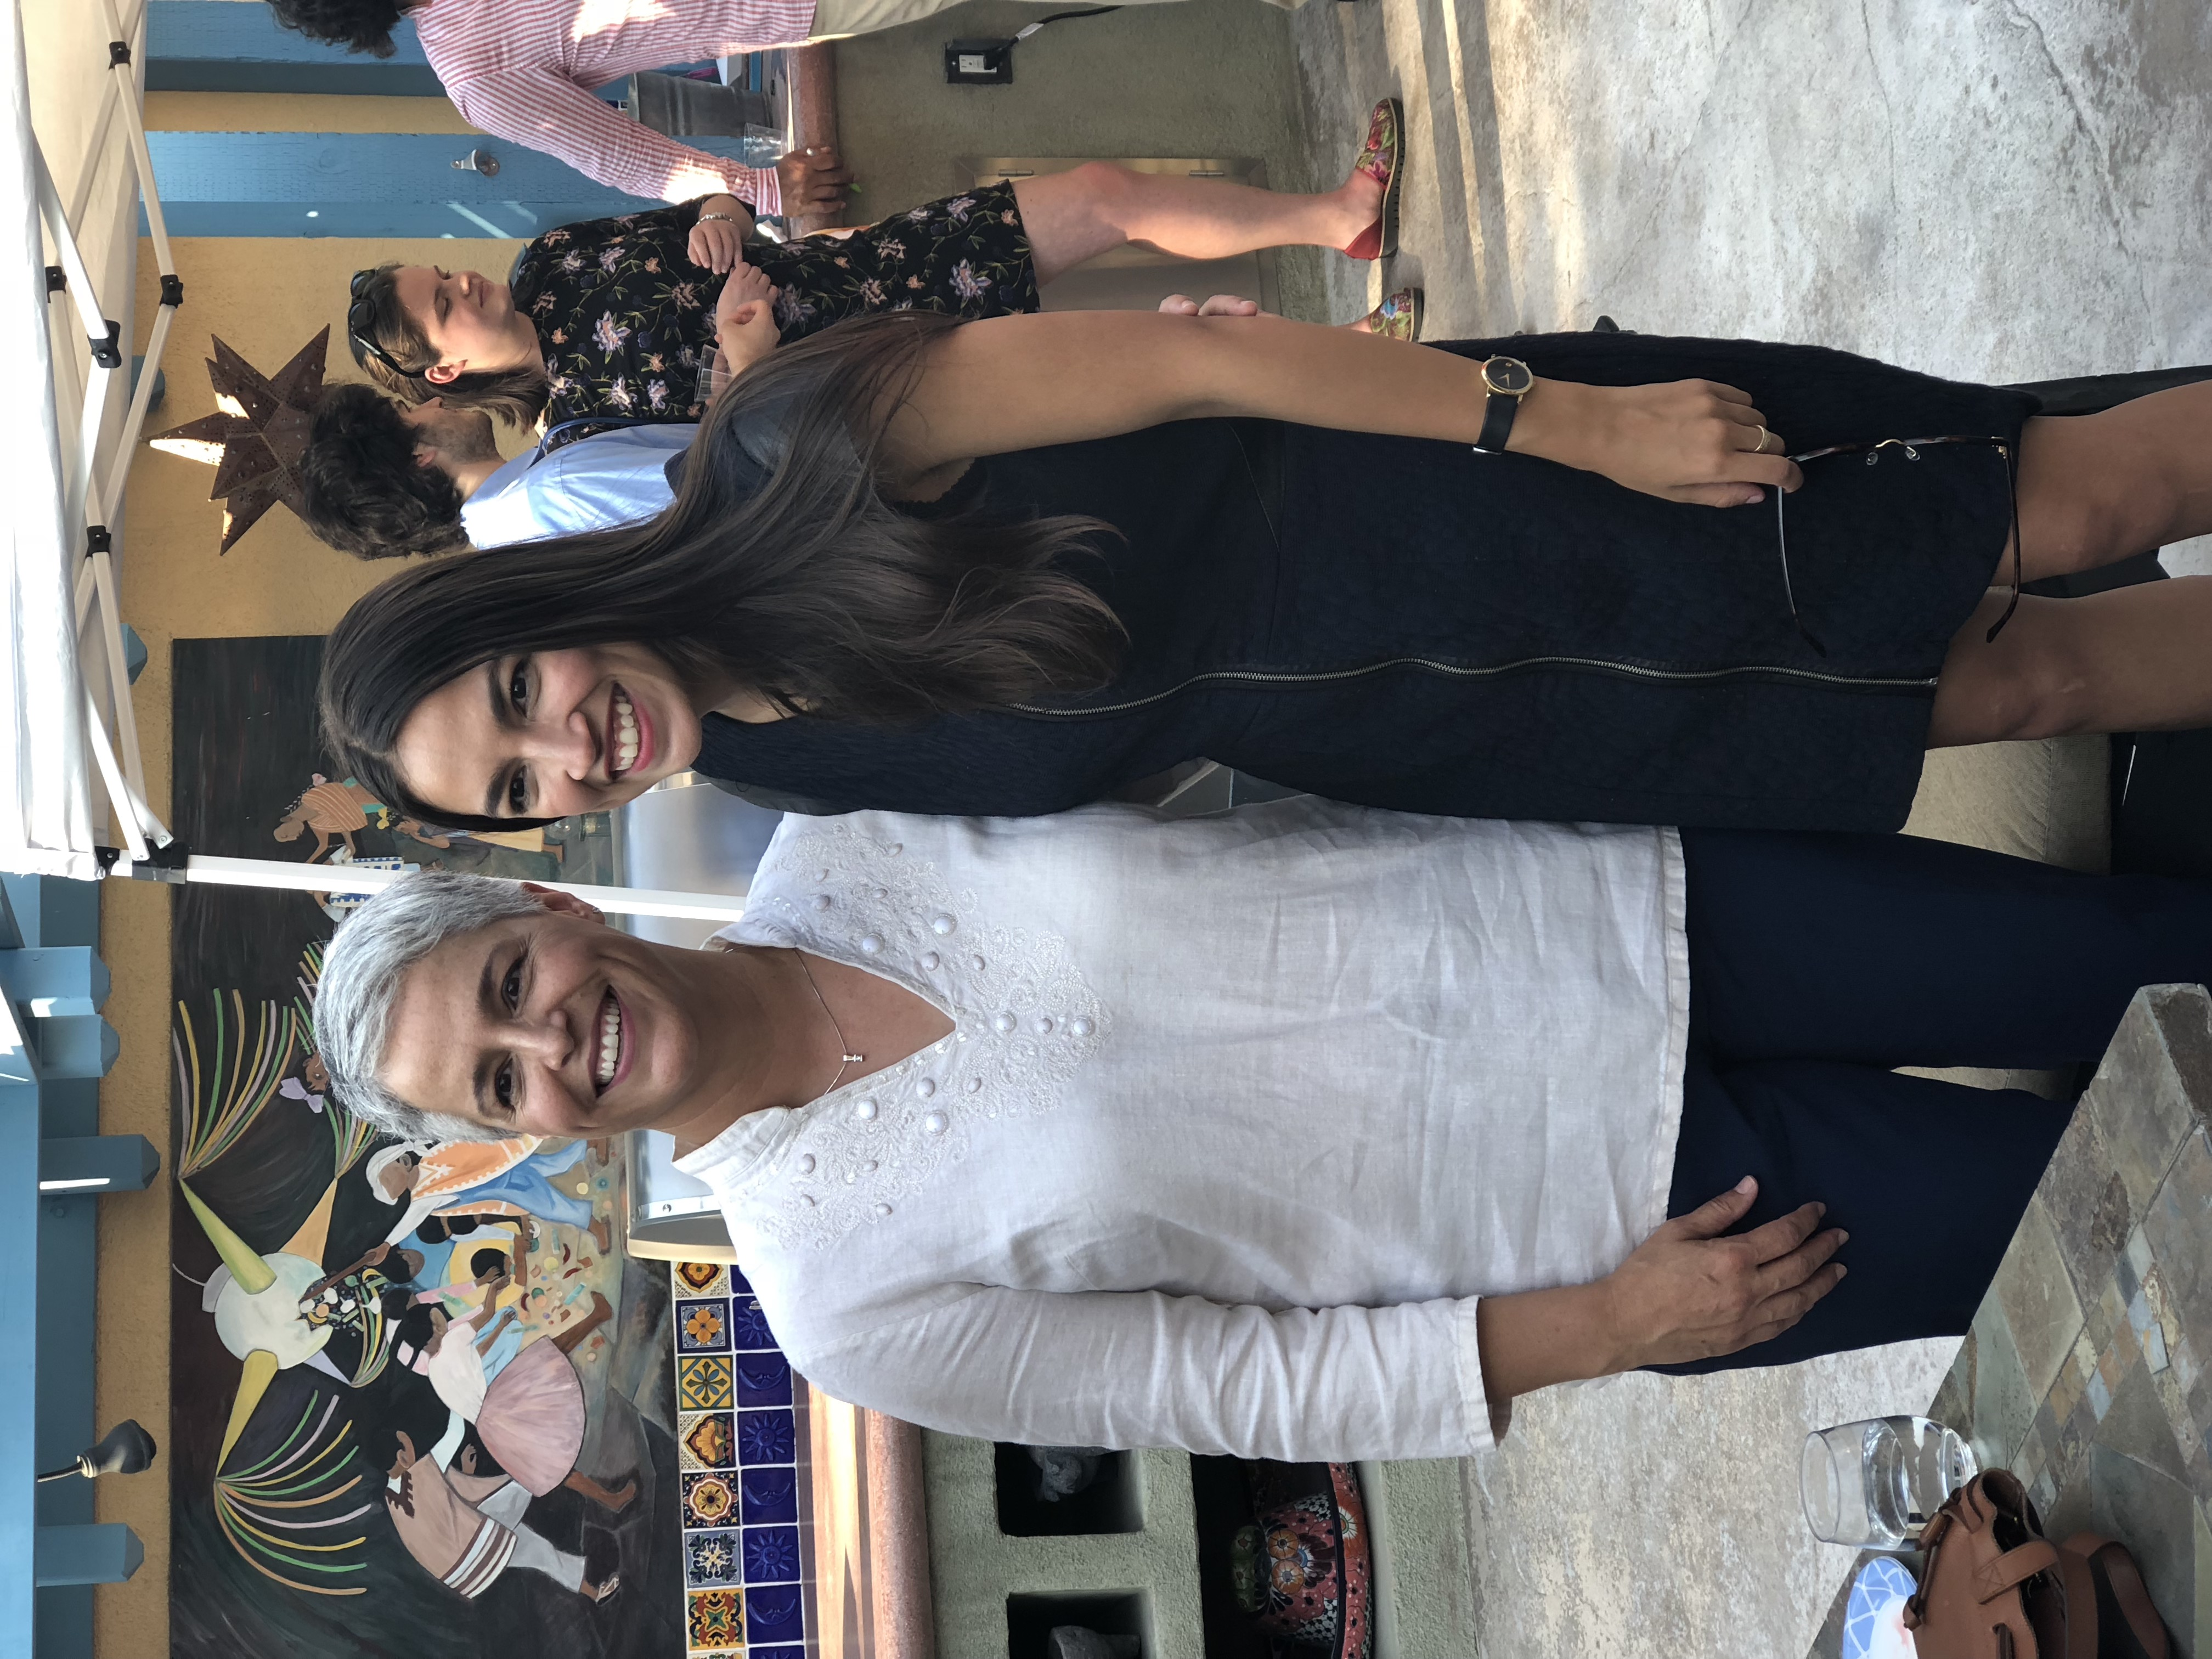 With Ocasio-Cortez 7/30/18